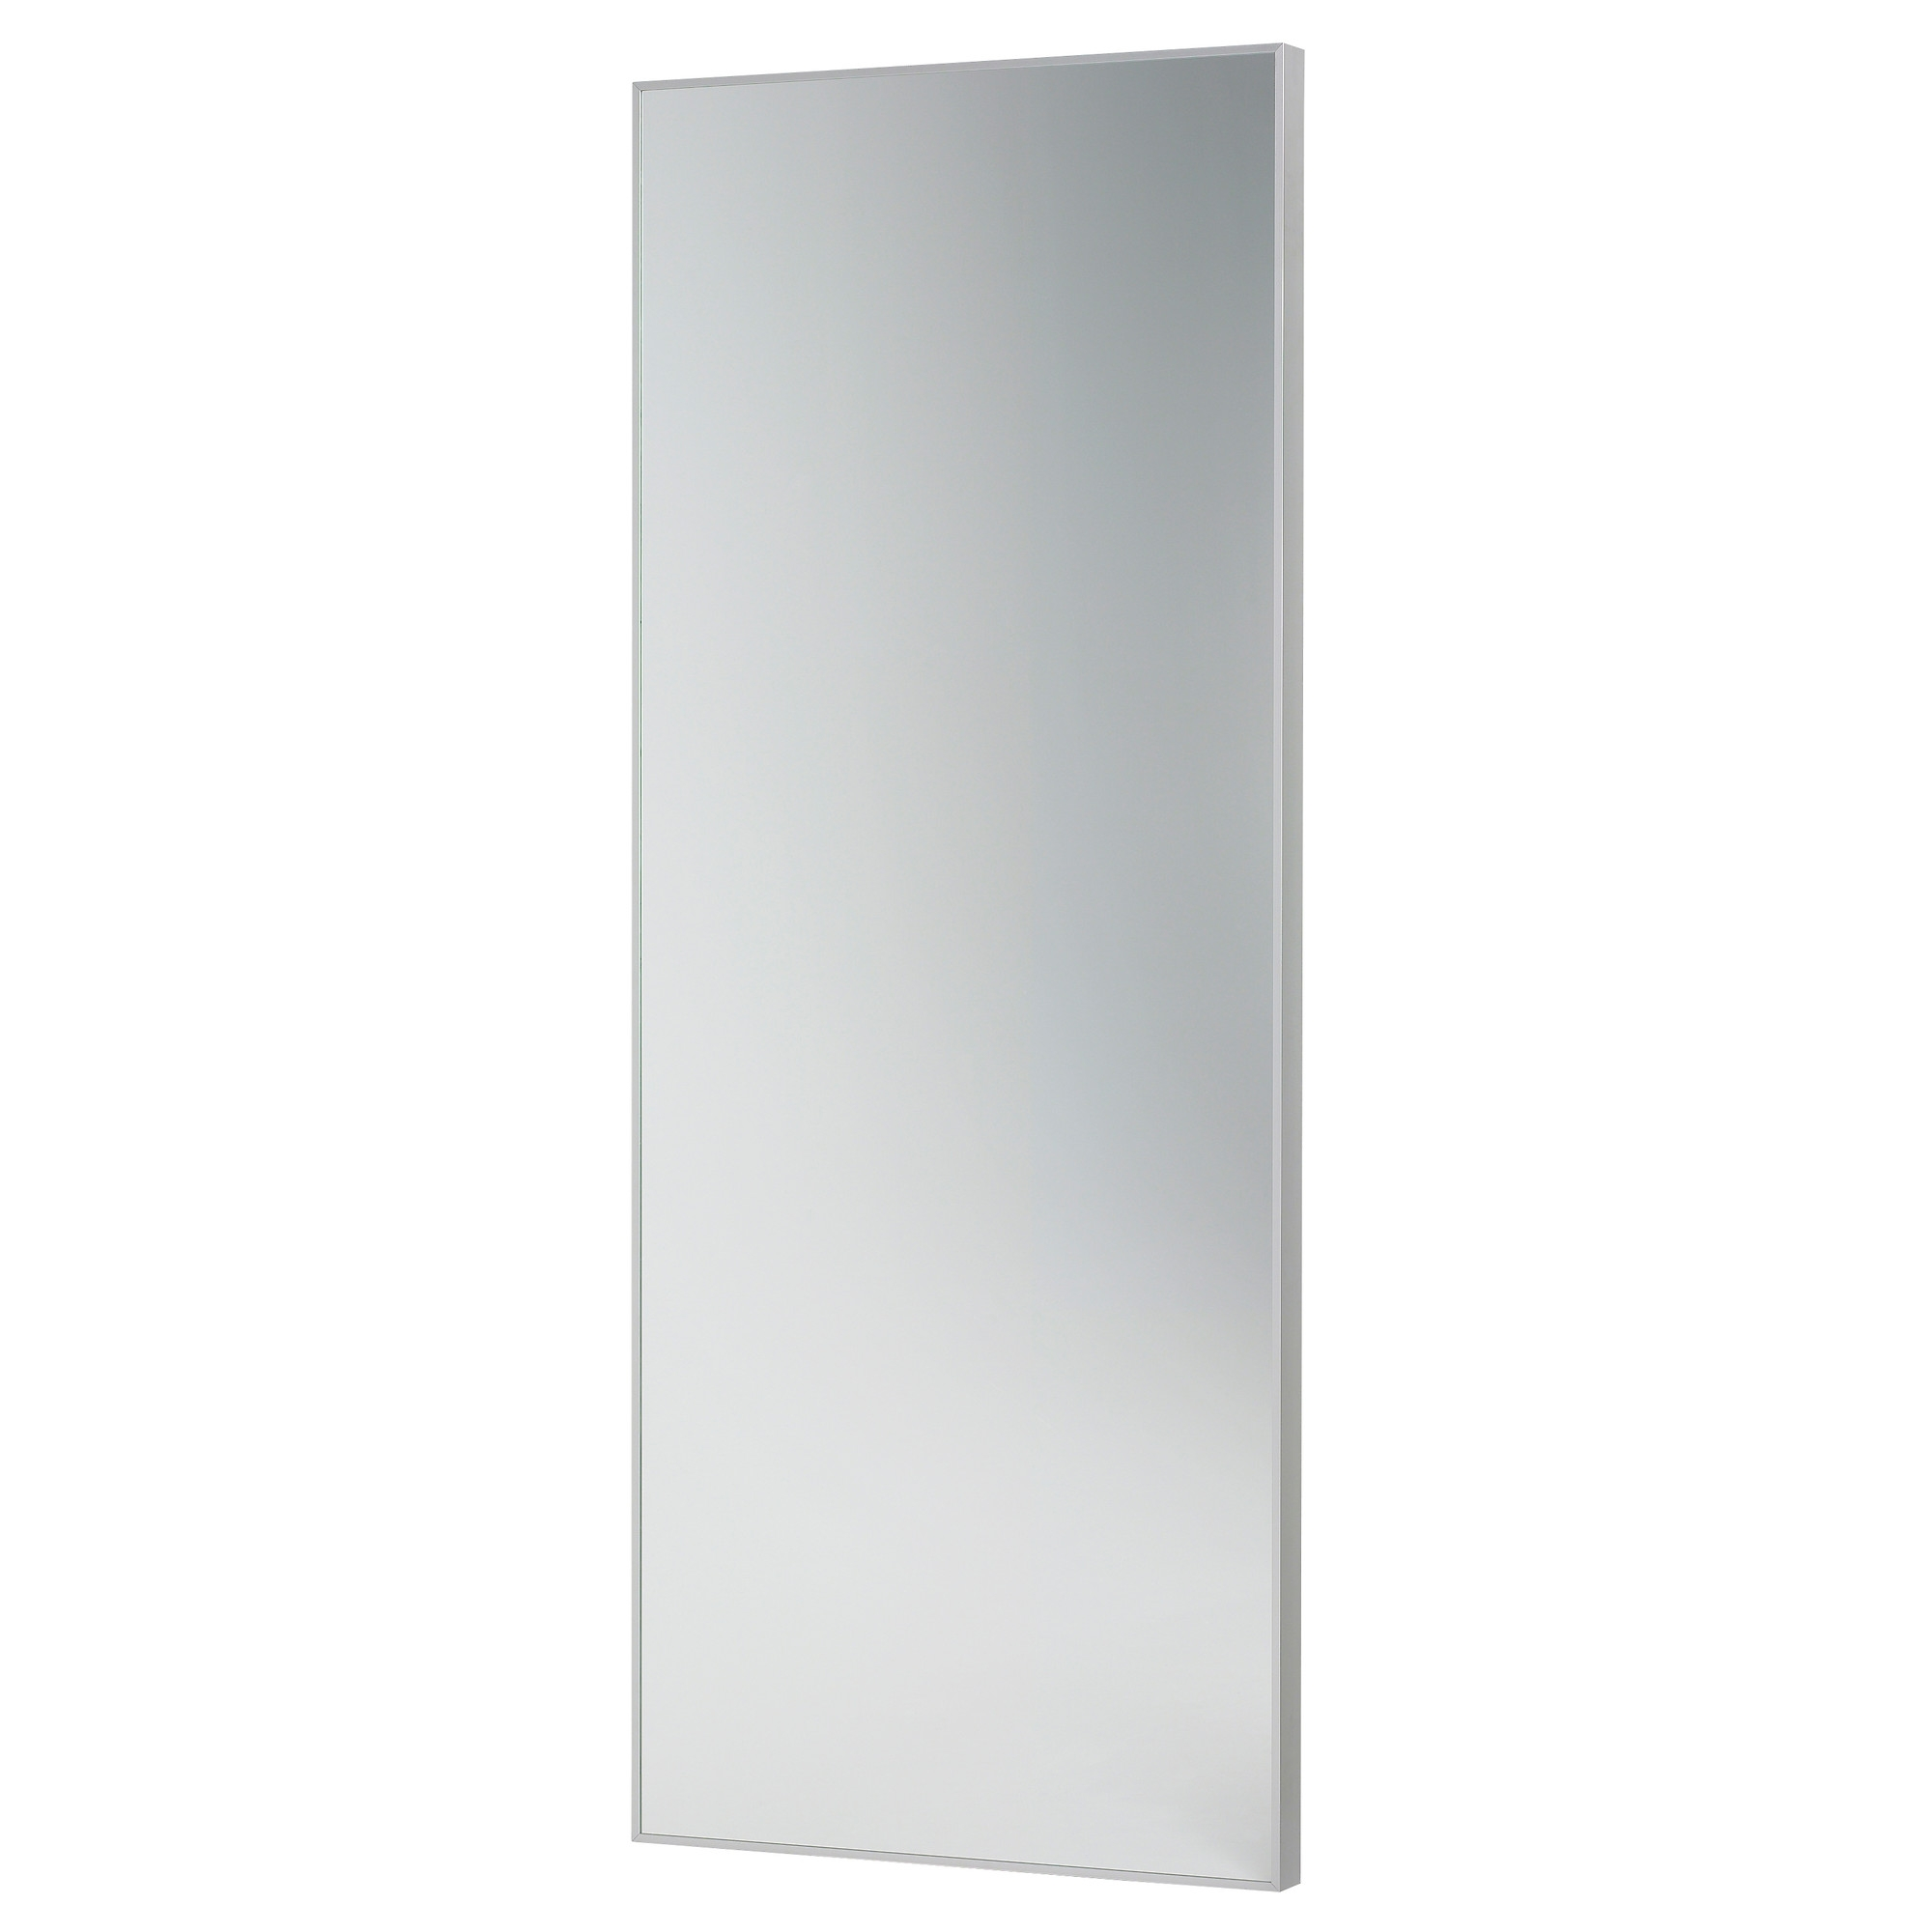 Mirrors Ikea With Slim Wall Mirror (Image 7 of 15)